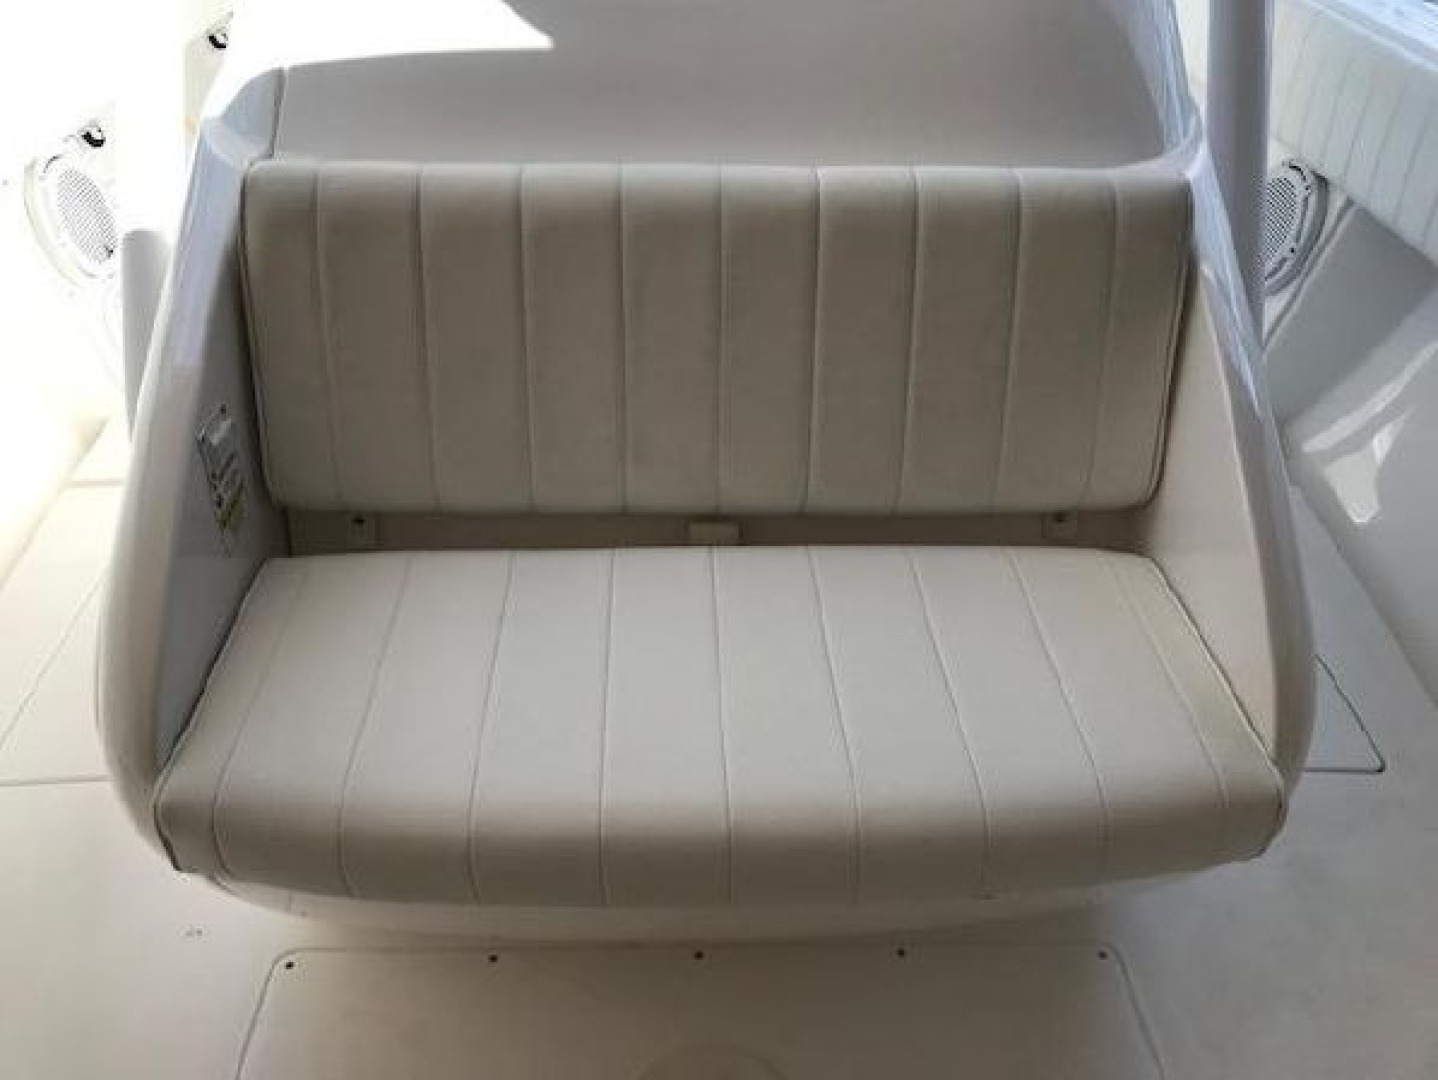 Intrepid-327 Center Console 2014 -Fort Lauderdale-Florida-United States-1564293 | Thumbnail